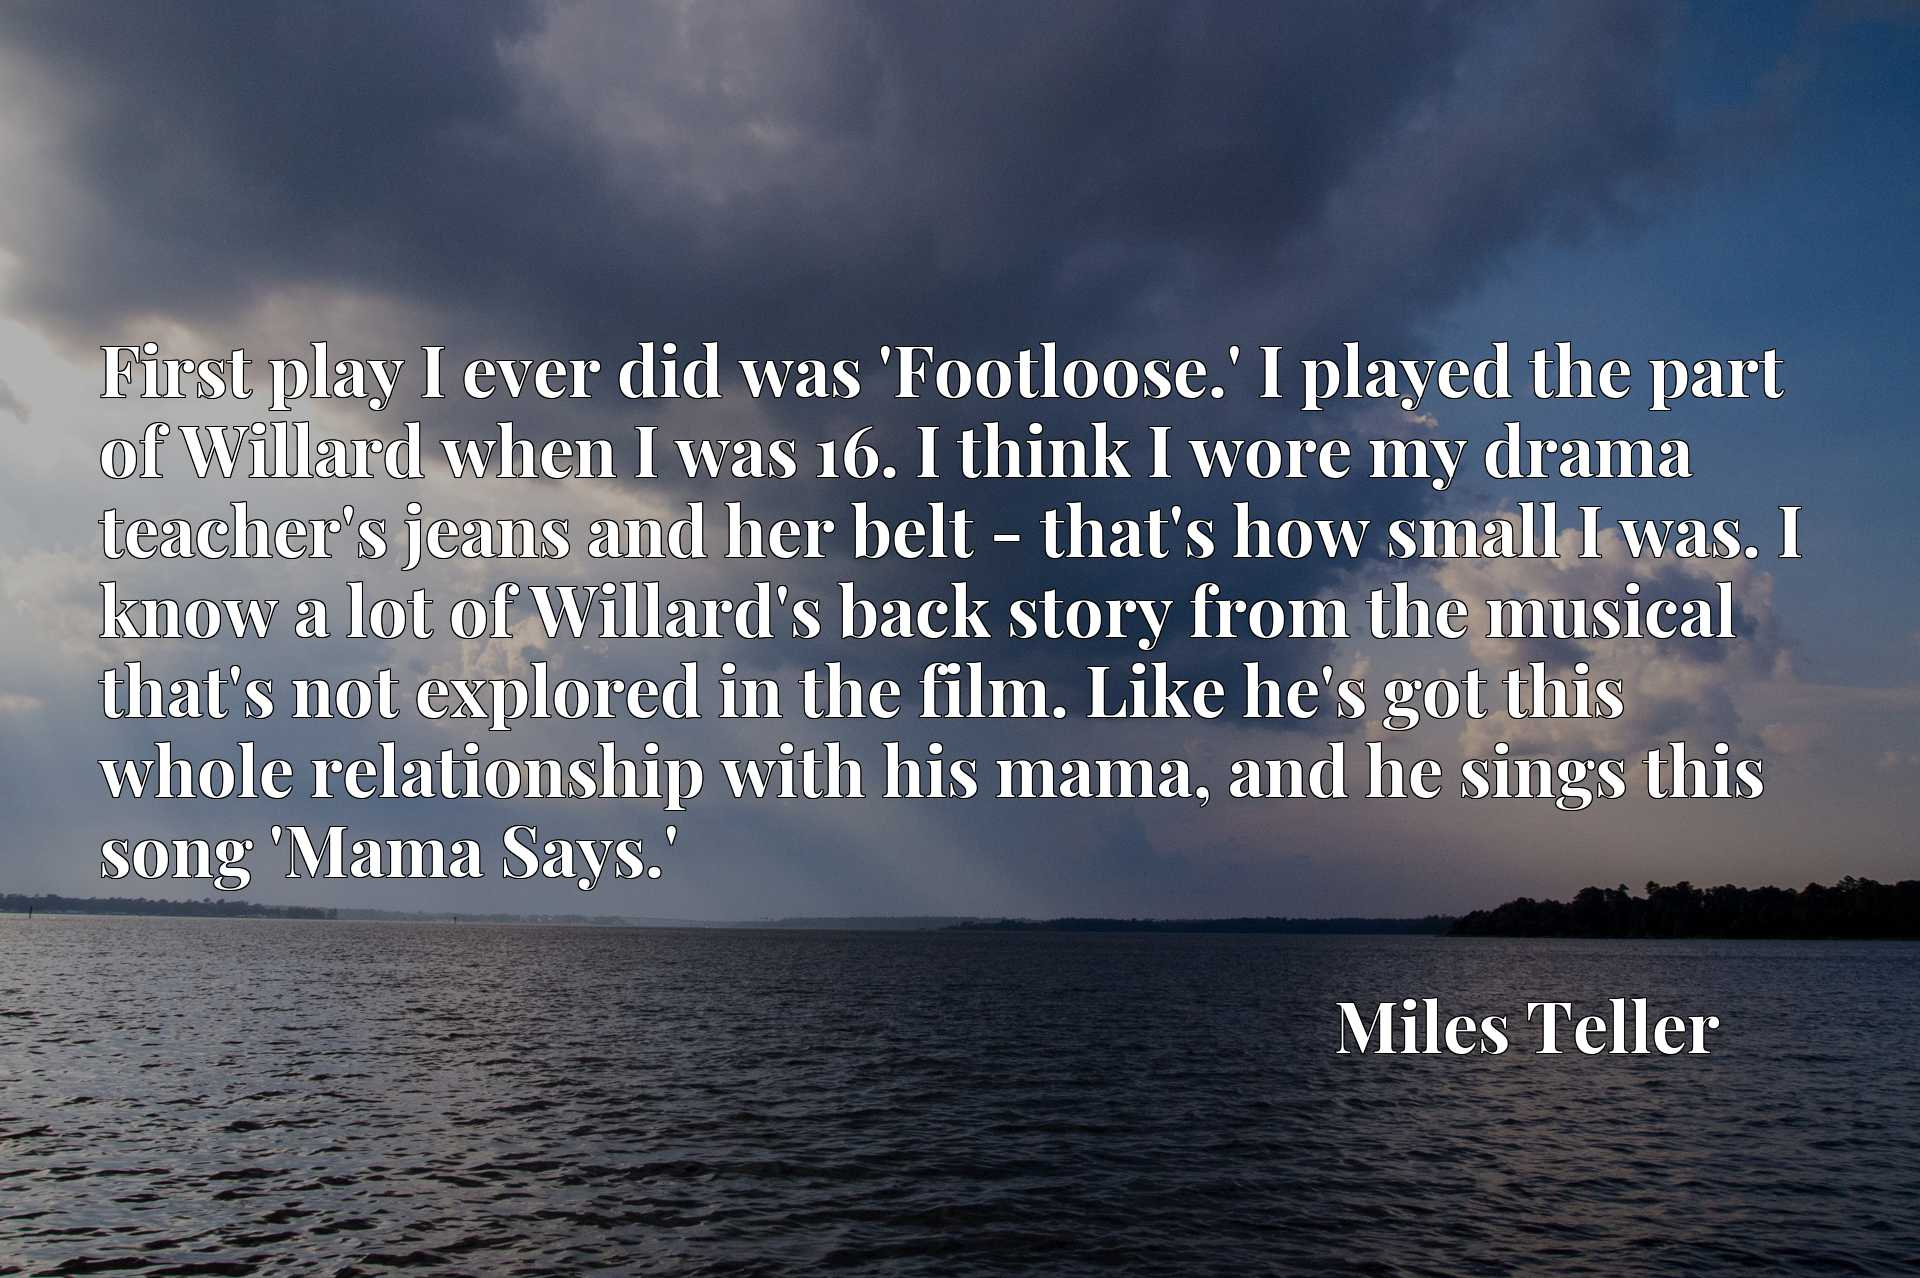 First play I ever did was 'Footloose.' I played the part of Willard when I was 16. I think I wore my drama teacher's jeans and her belt - that's how small I was. I know a lot of Willard's back story from the musical that's not explored in the film. Like he's got this whole relationship with his mama, and he sings this song 'Mama Says.'